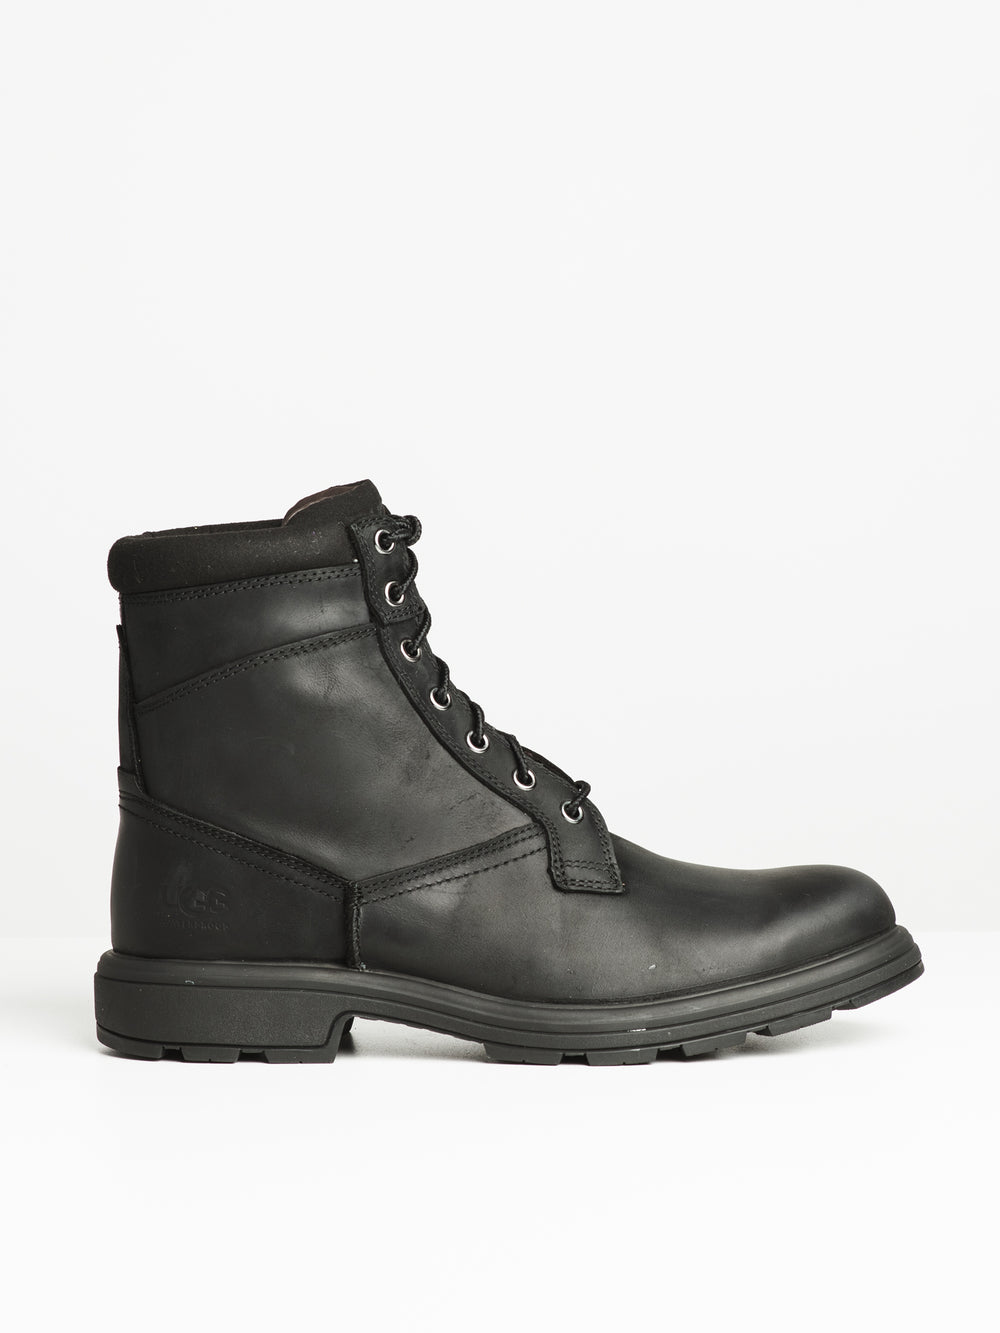 MENS BILTMORE WORKBOOT - BLACK